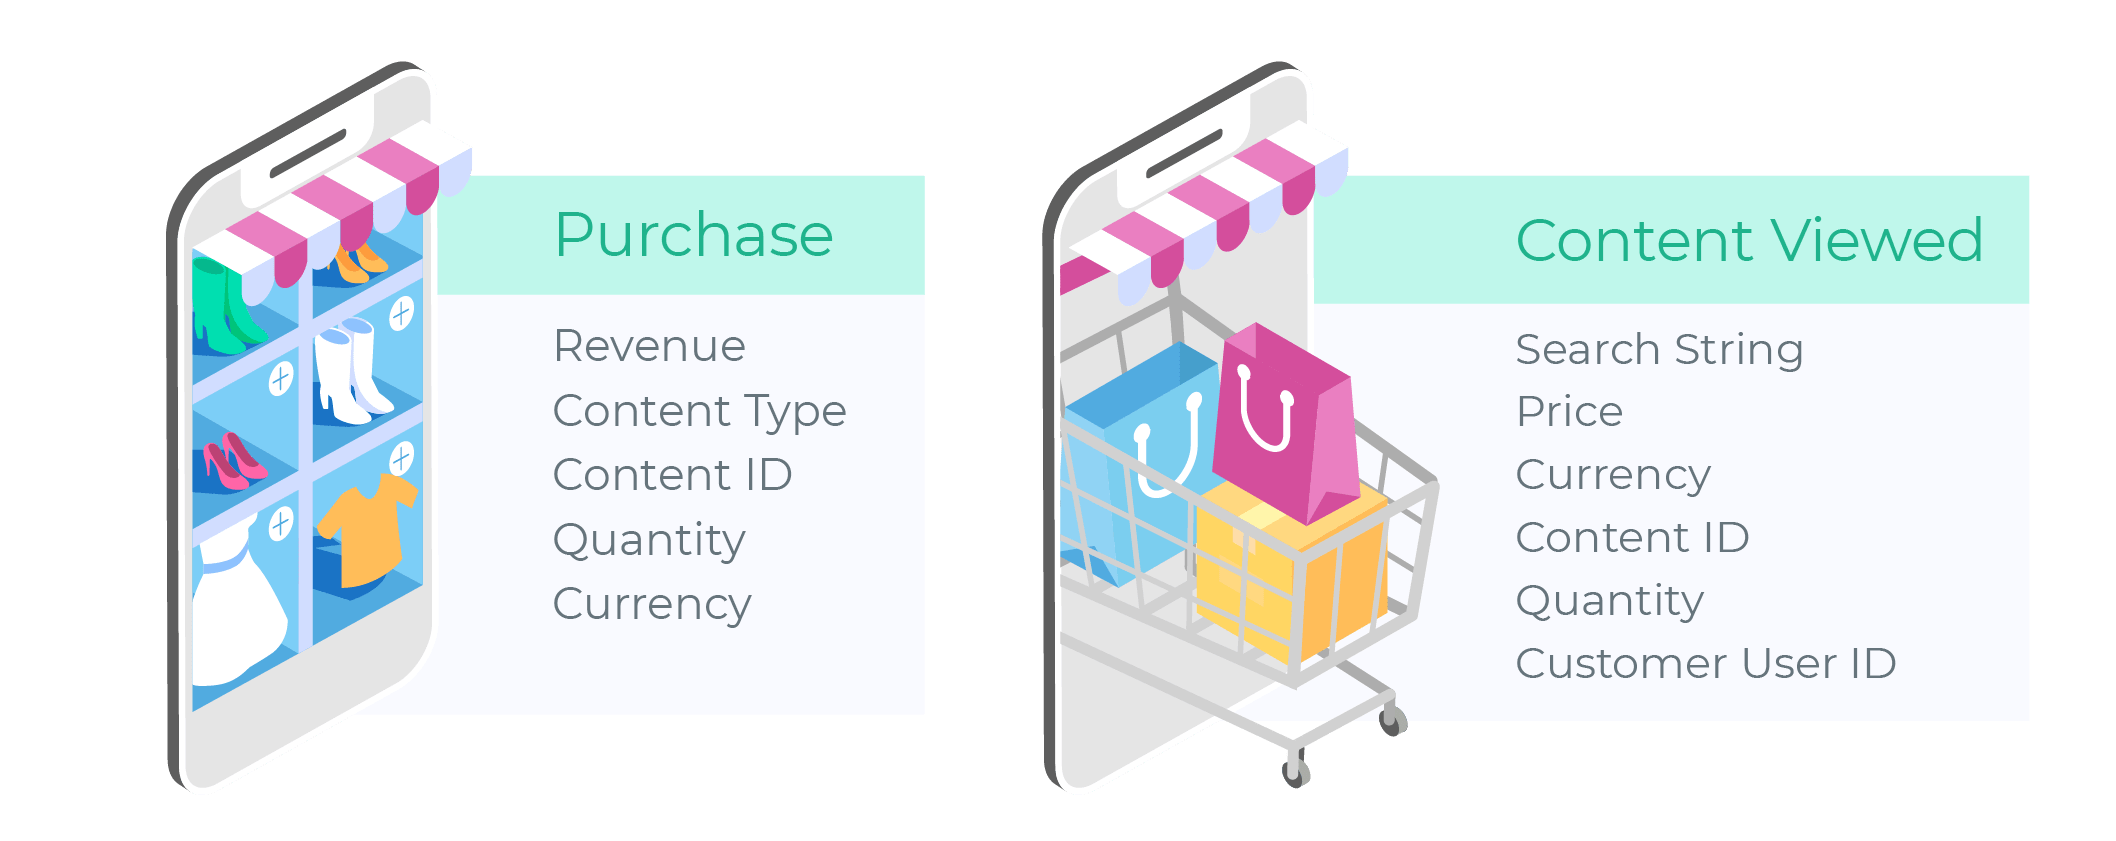 shopping apps - standard in-app events versus rich in-app events